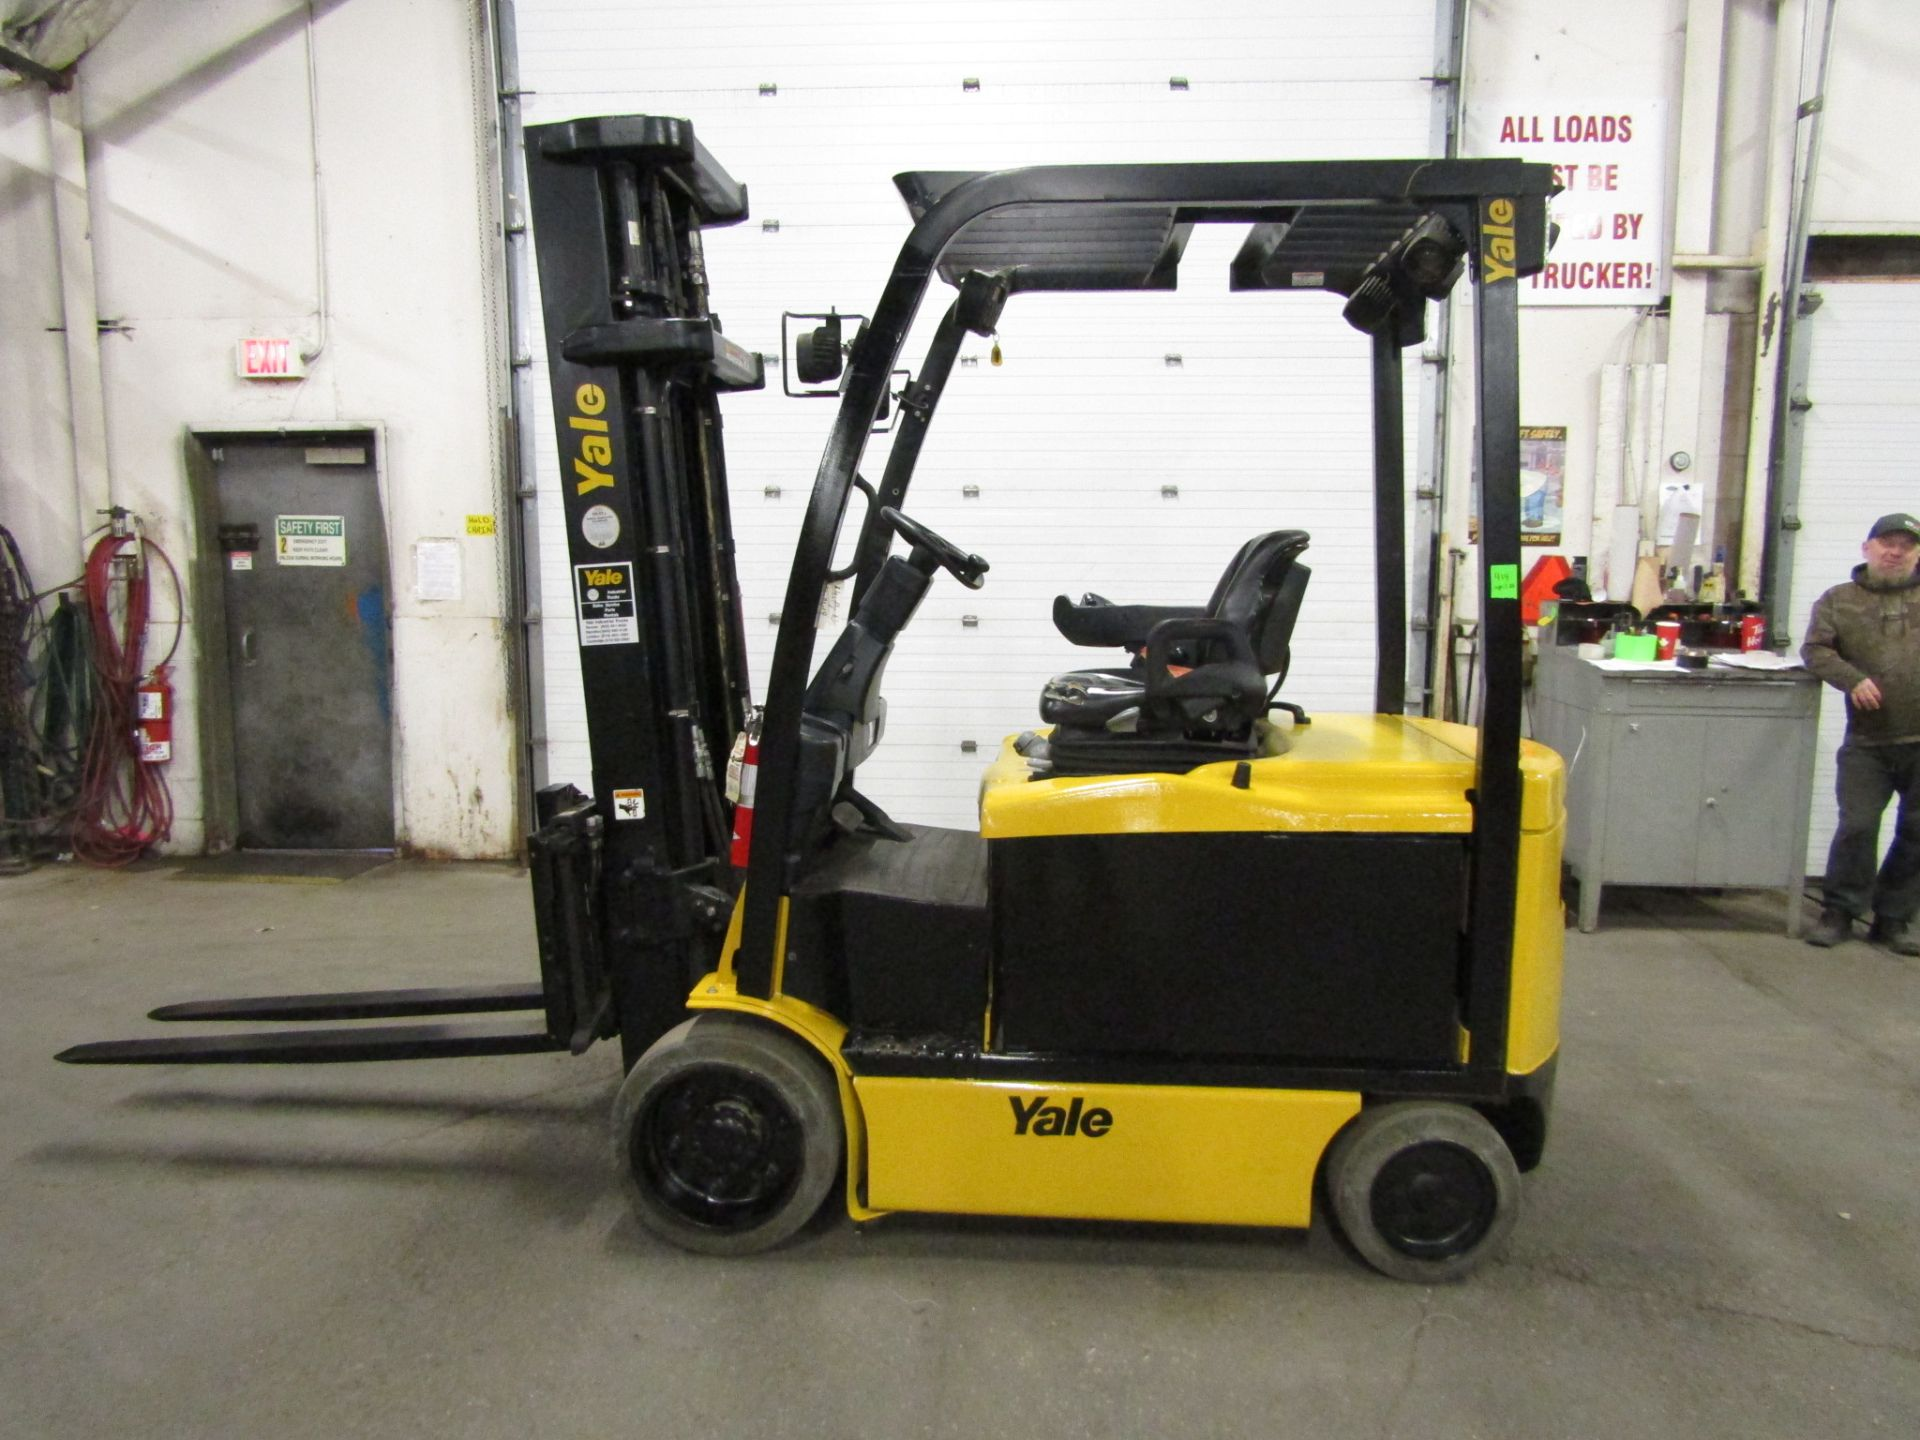 Lot 178 - 2011 Yale 7000lbs Electric Forklift with sideshift & 3-stage mast